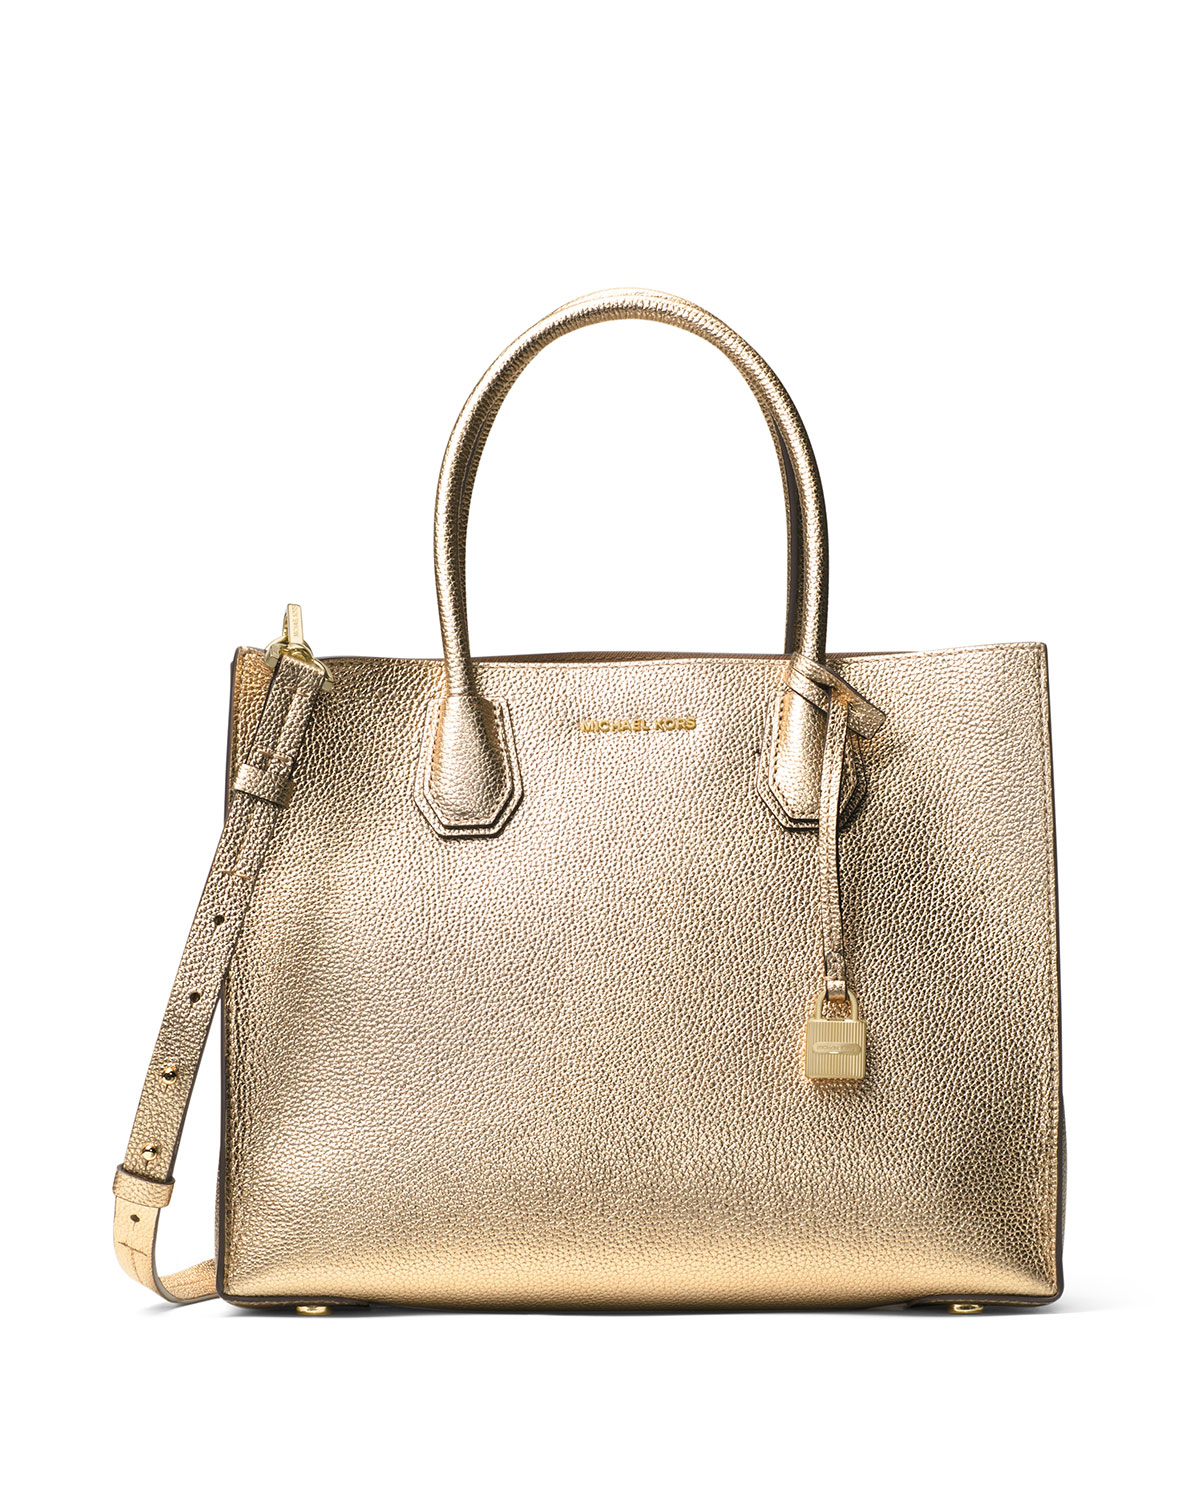 095467ca8510 MICHAEL Michael Kors Mercer Large Convertible Tote Bag